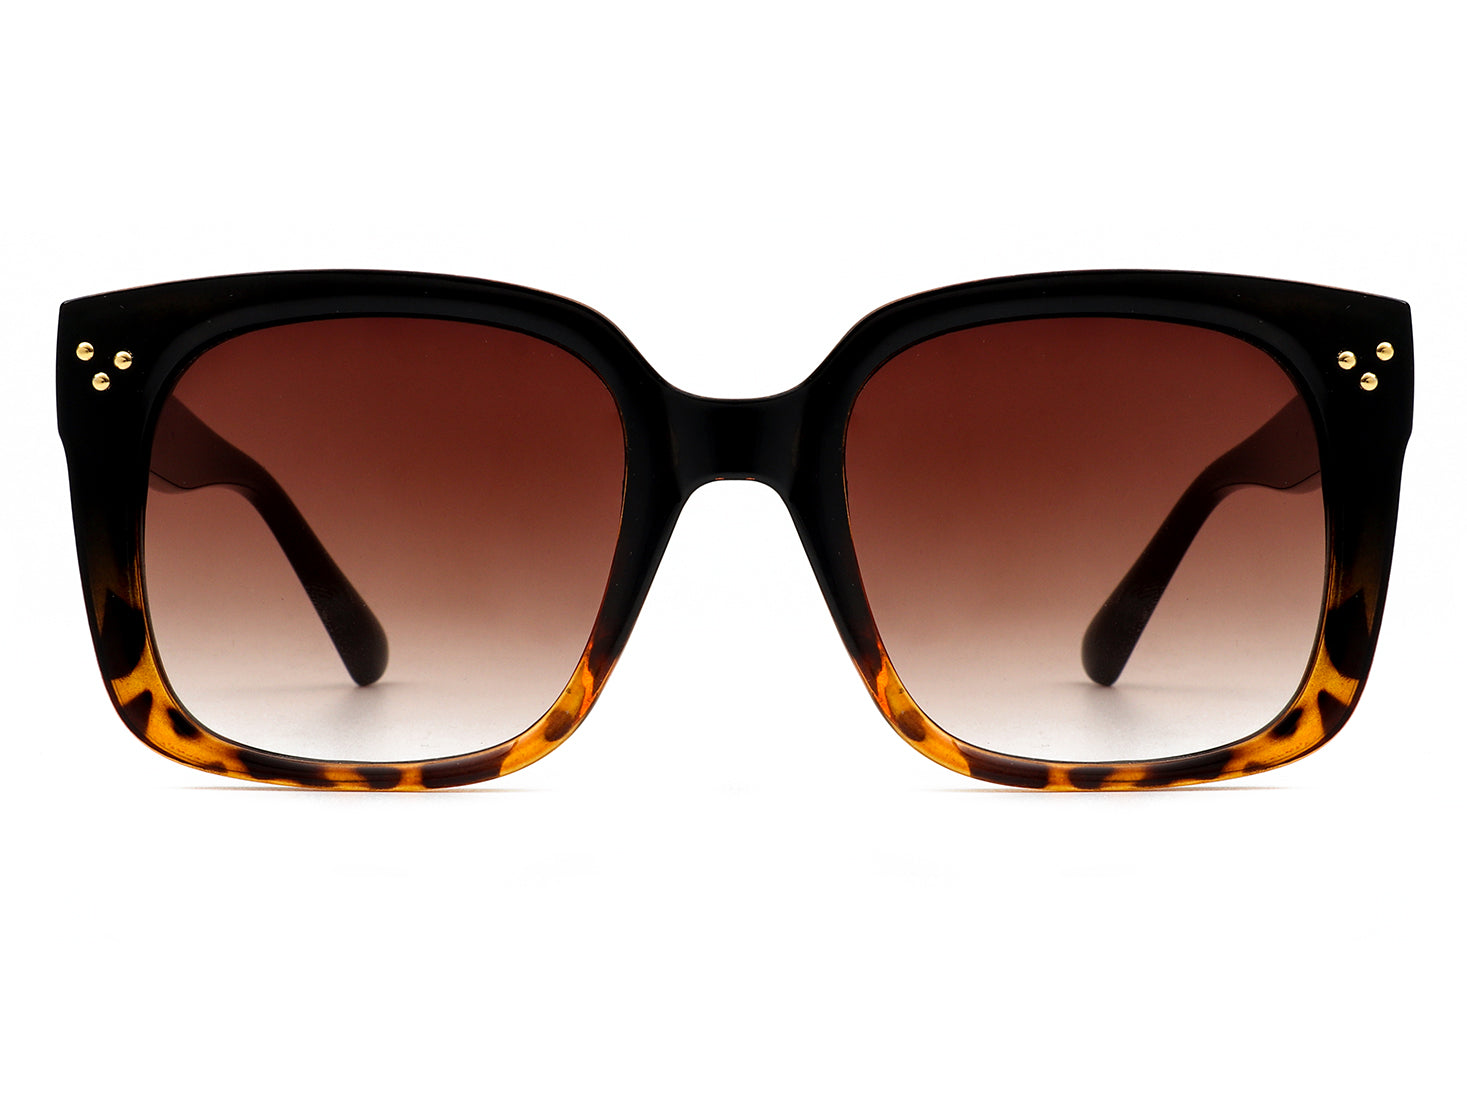 HS1023 - Classic Square Retro Vintage Cat Eye Fashion Sunglasses